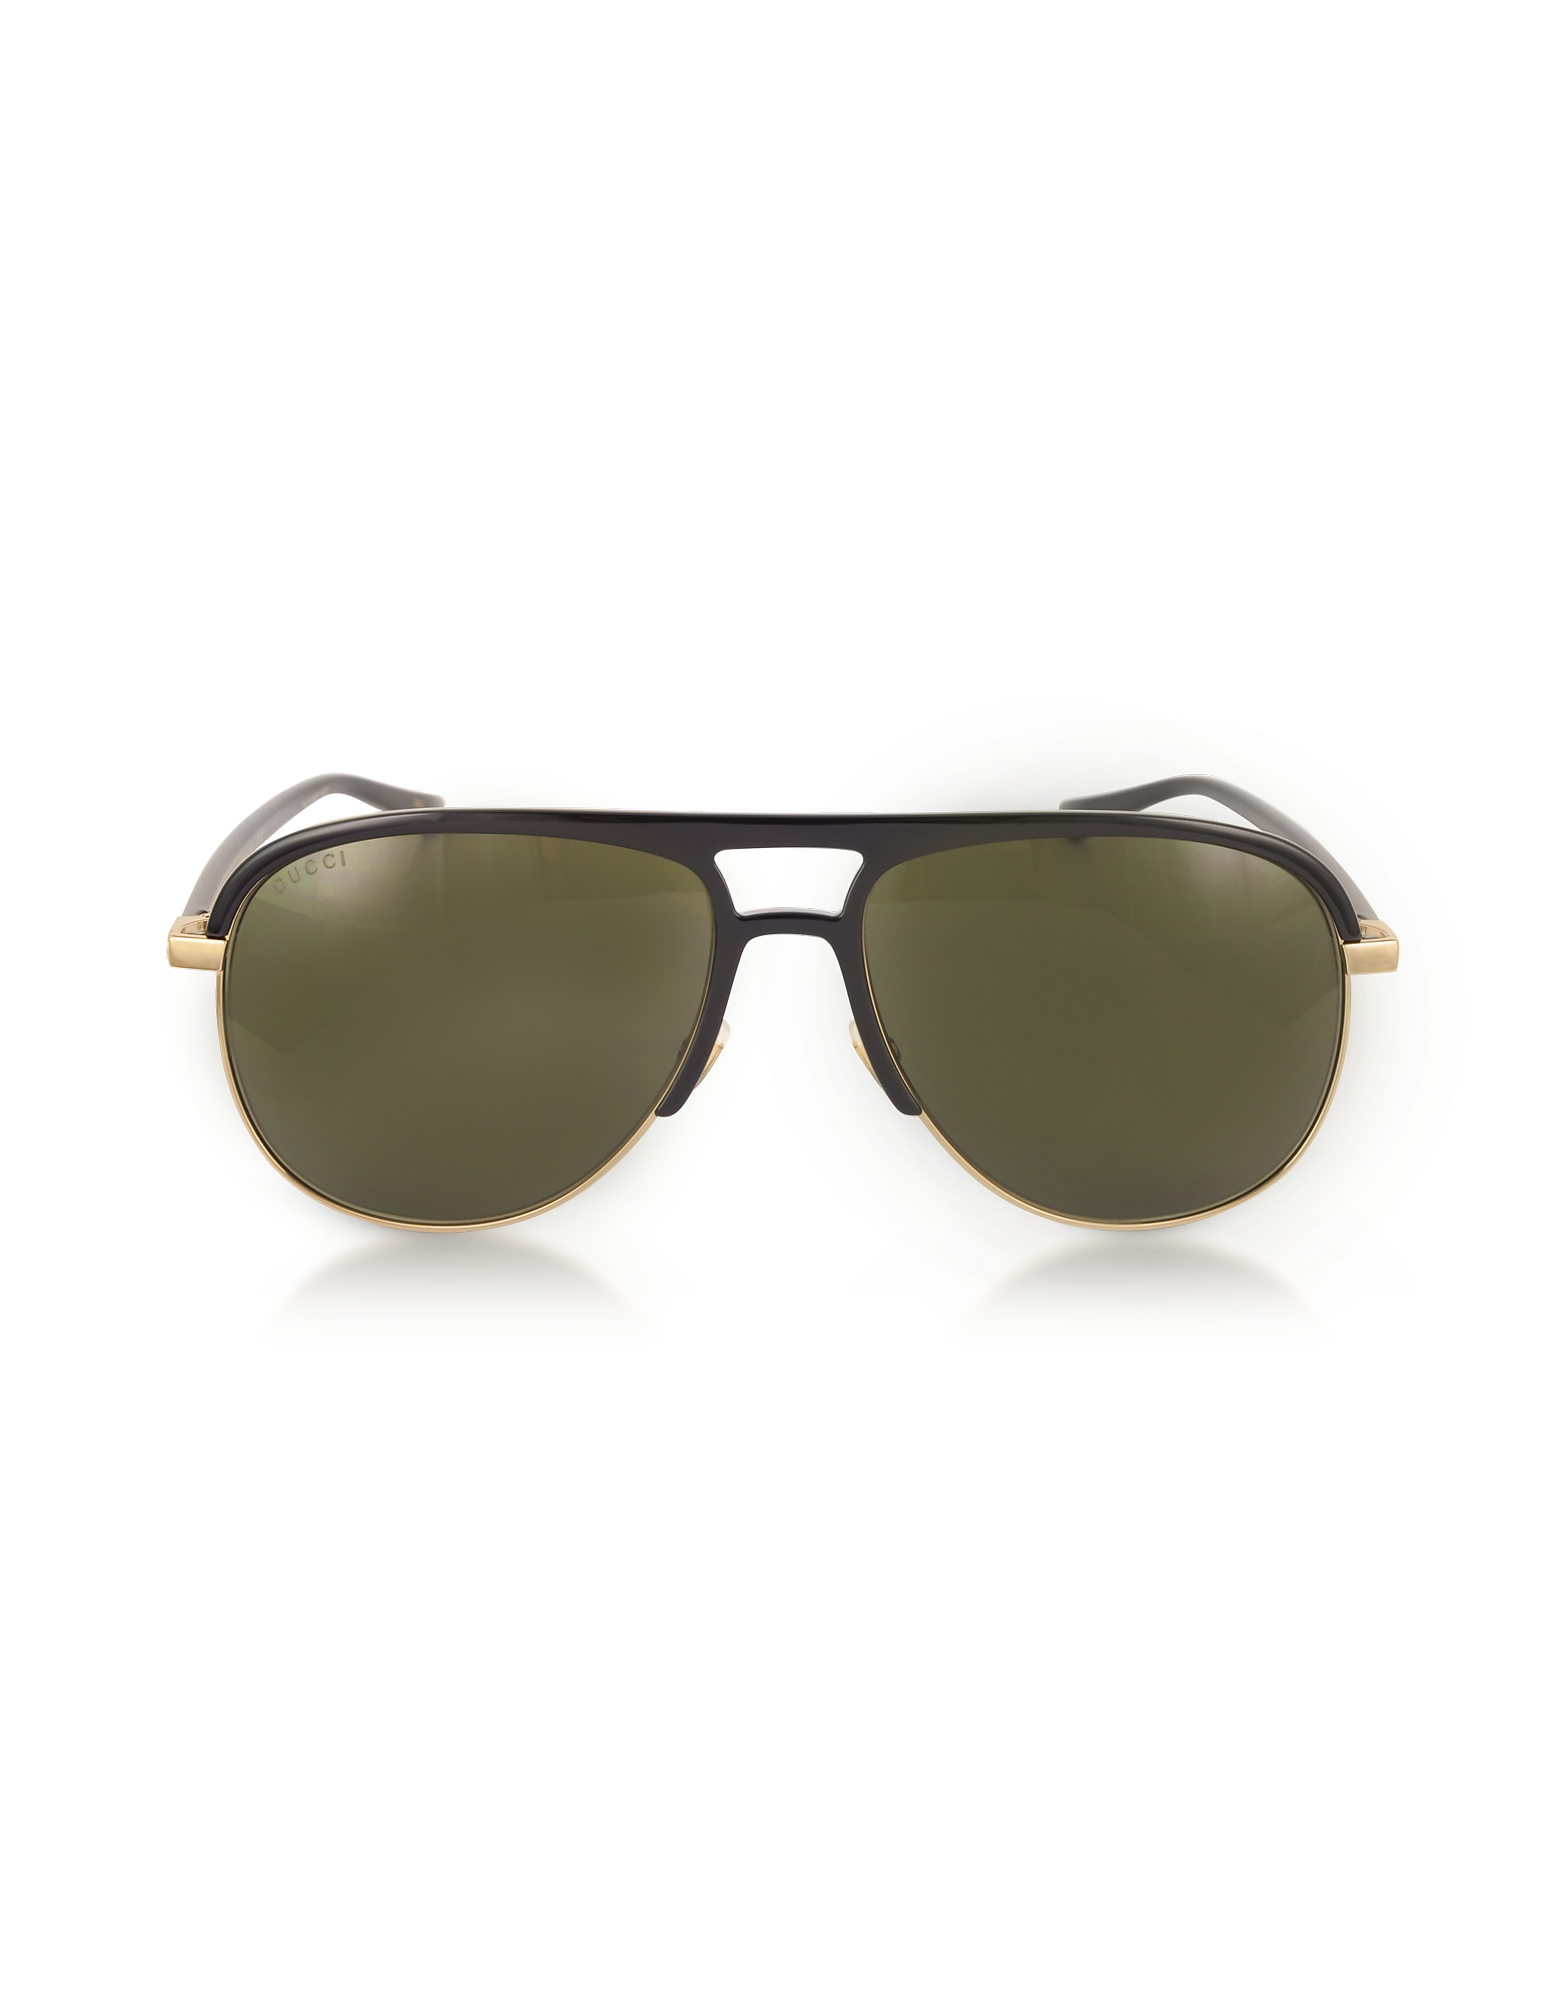 Gucci Sunglasses, GG0292S Metal and Acetate Frame Aviator Sunglasses